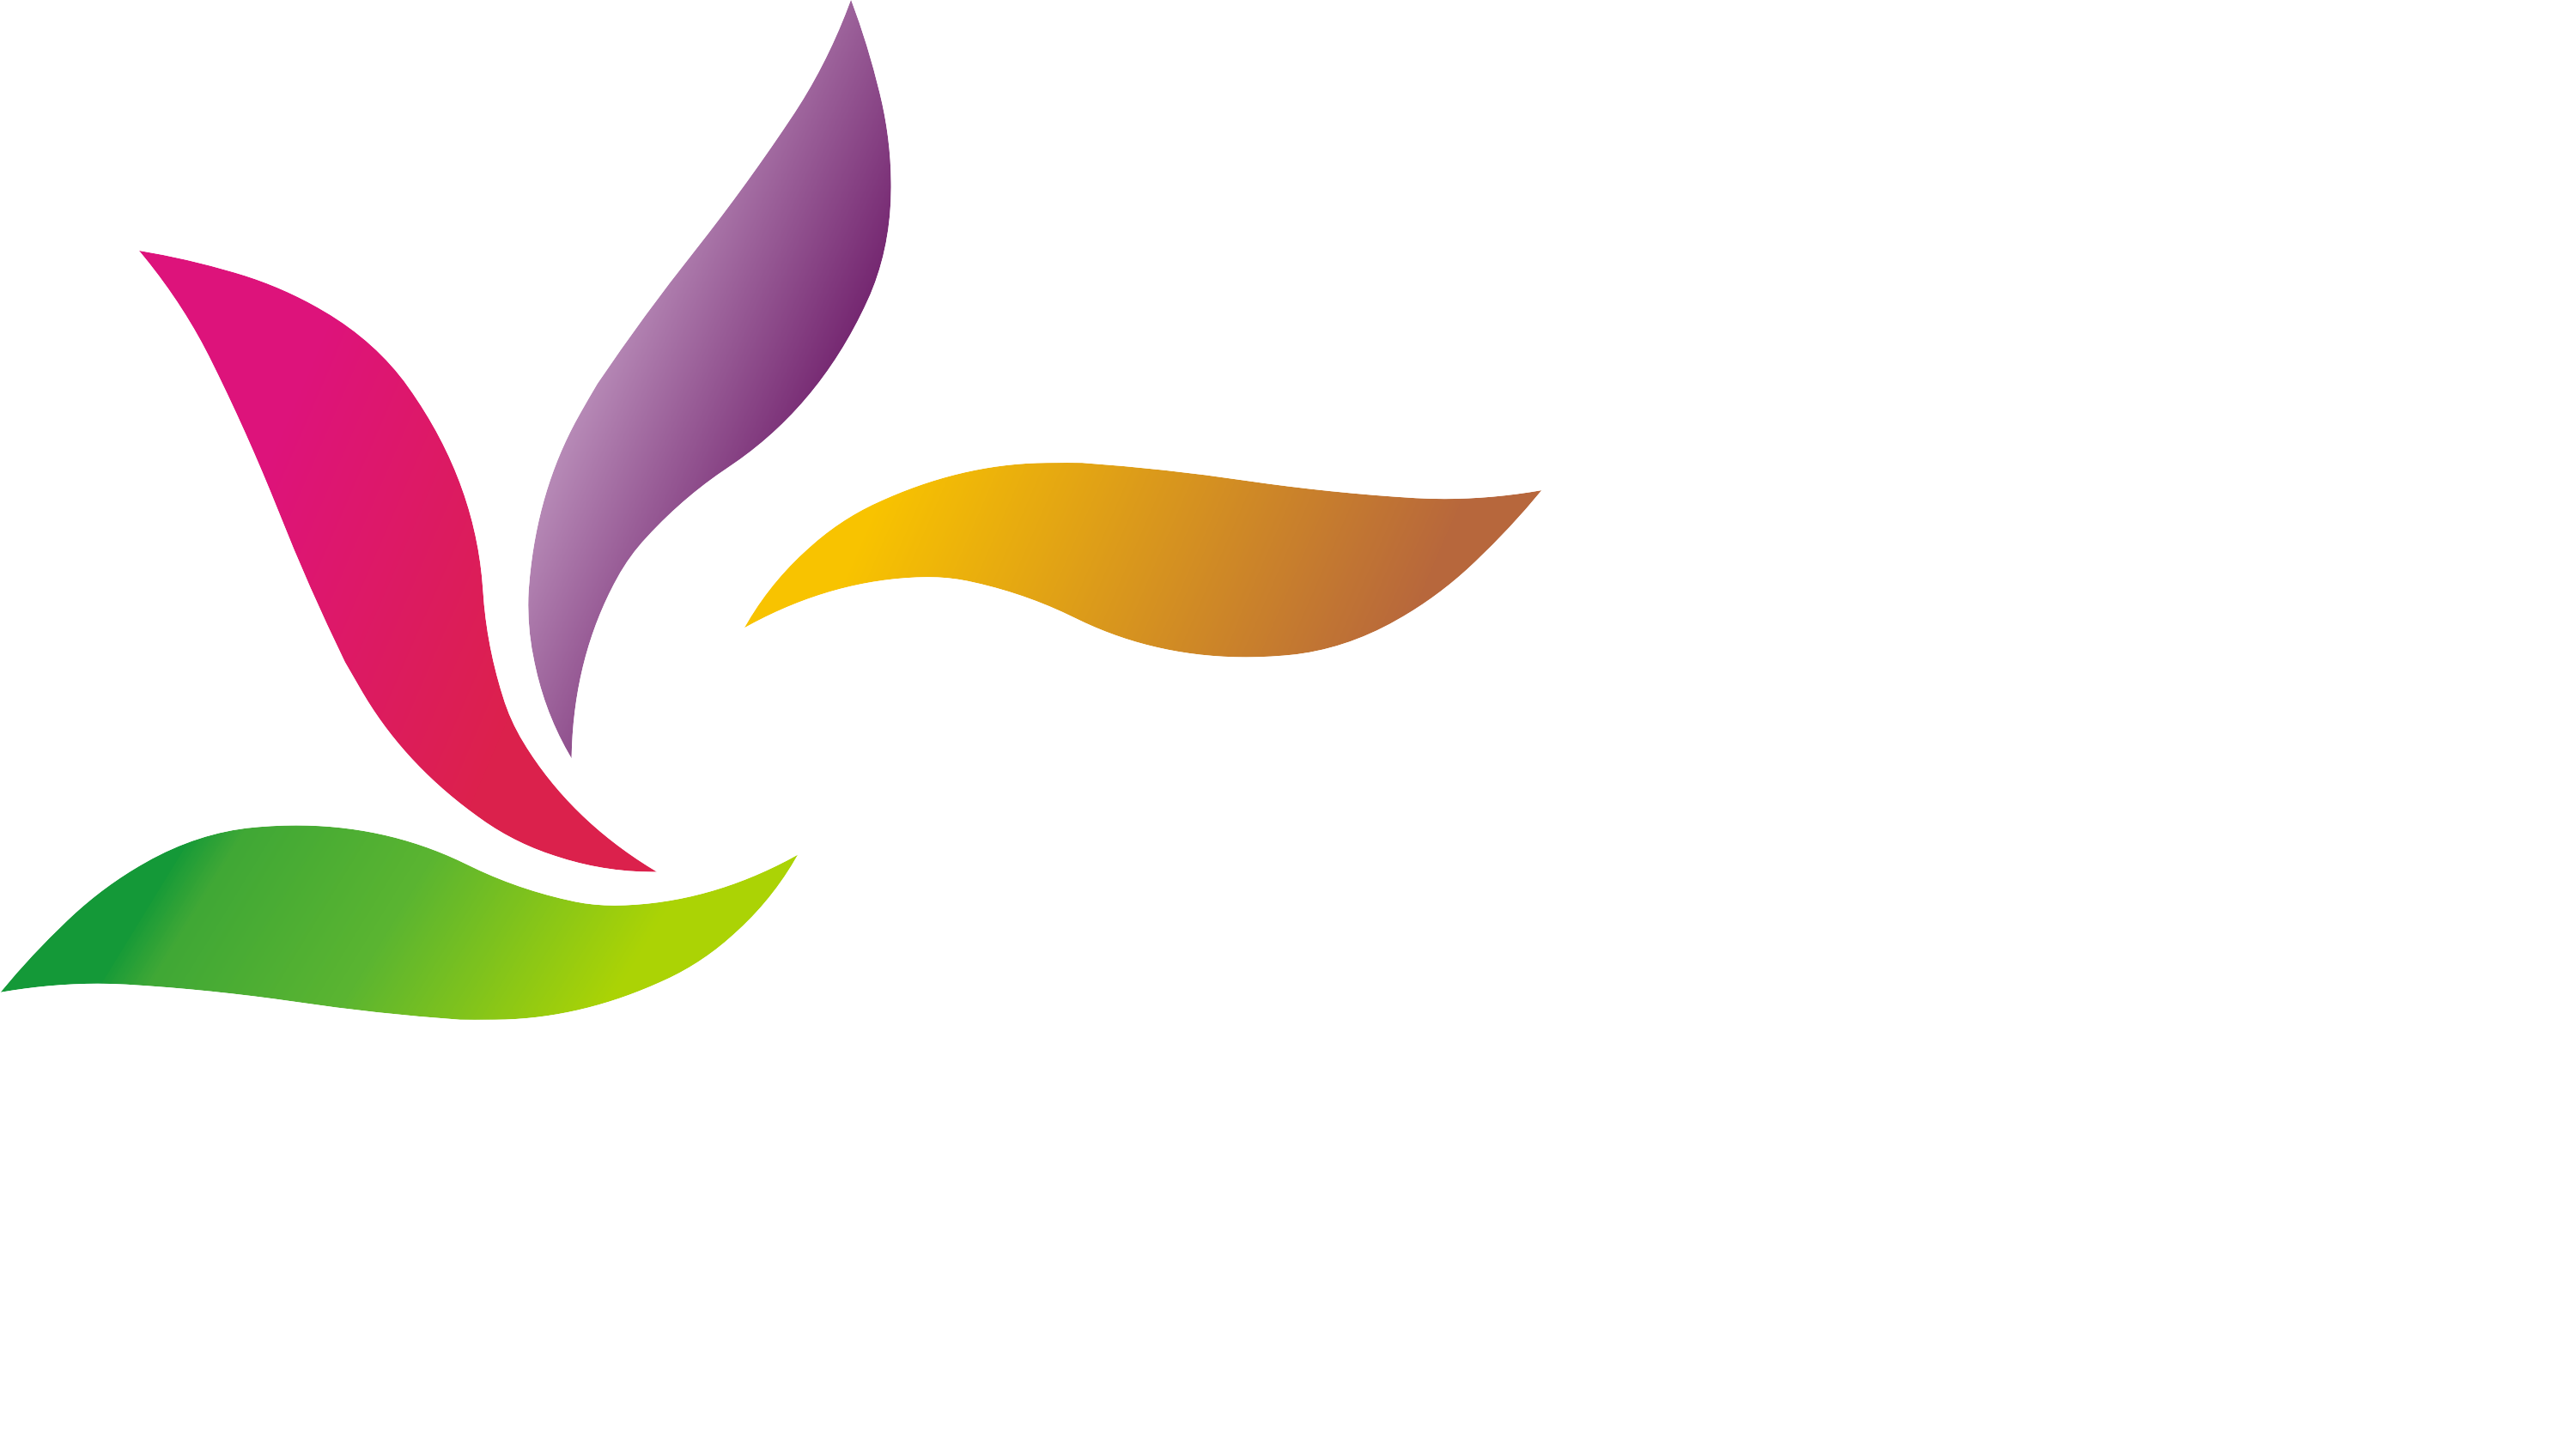 Us vector event management. Feelings network india total